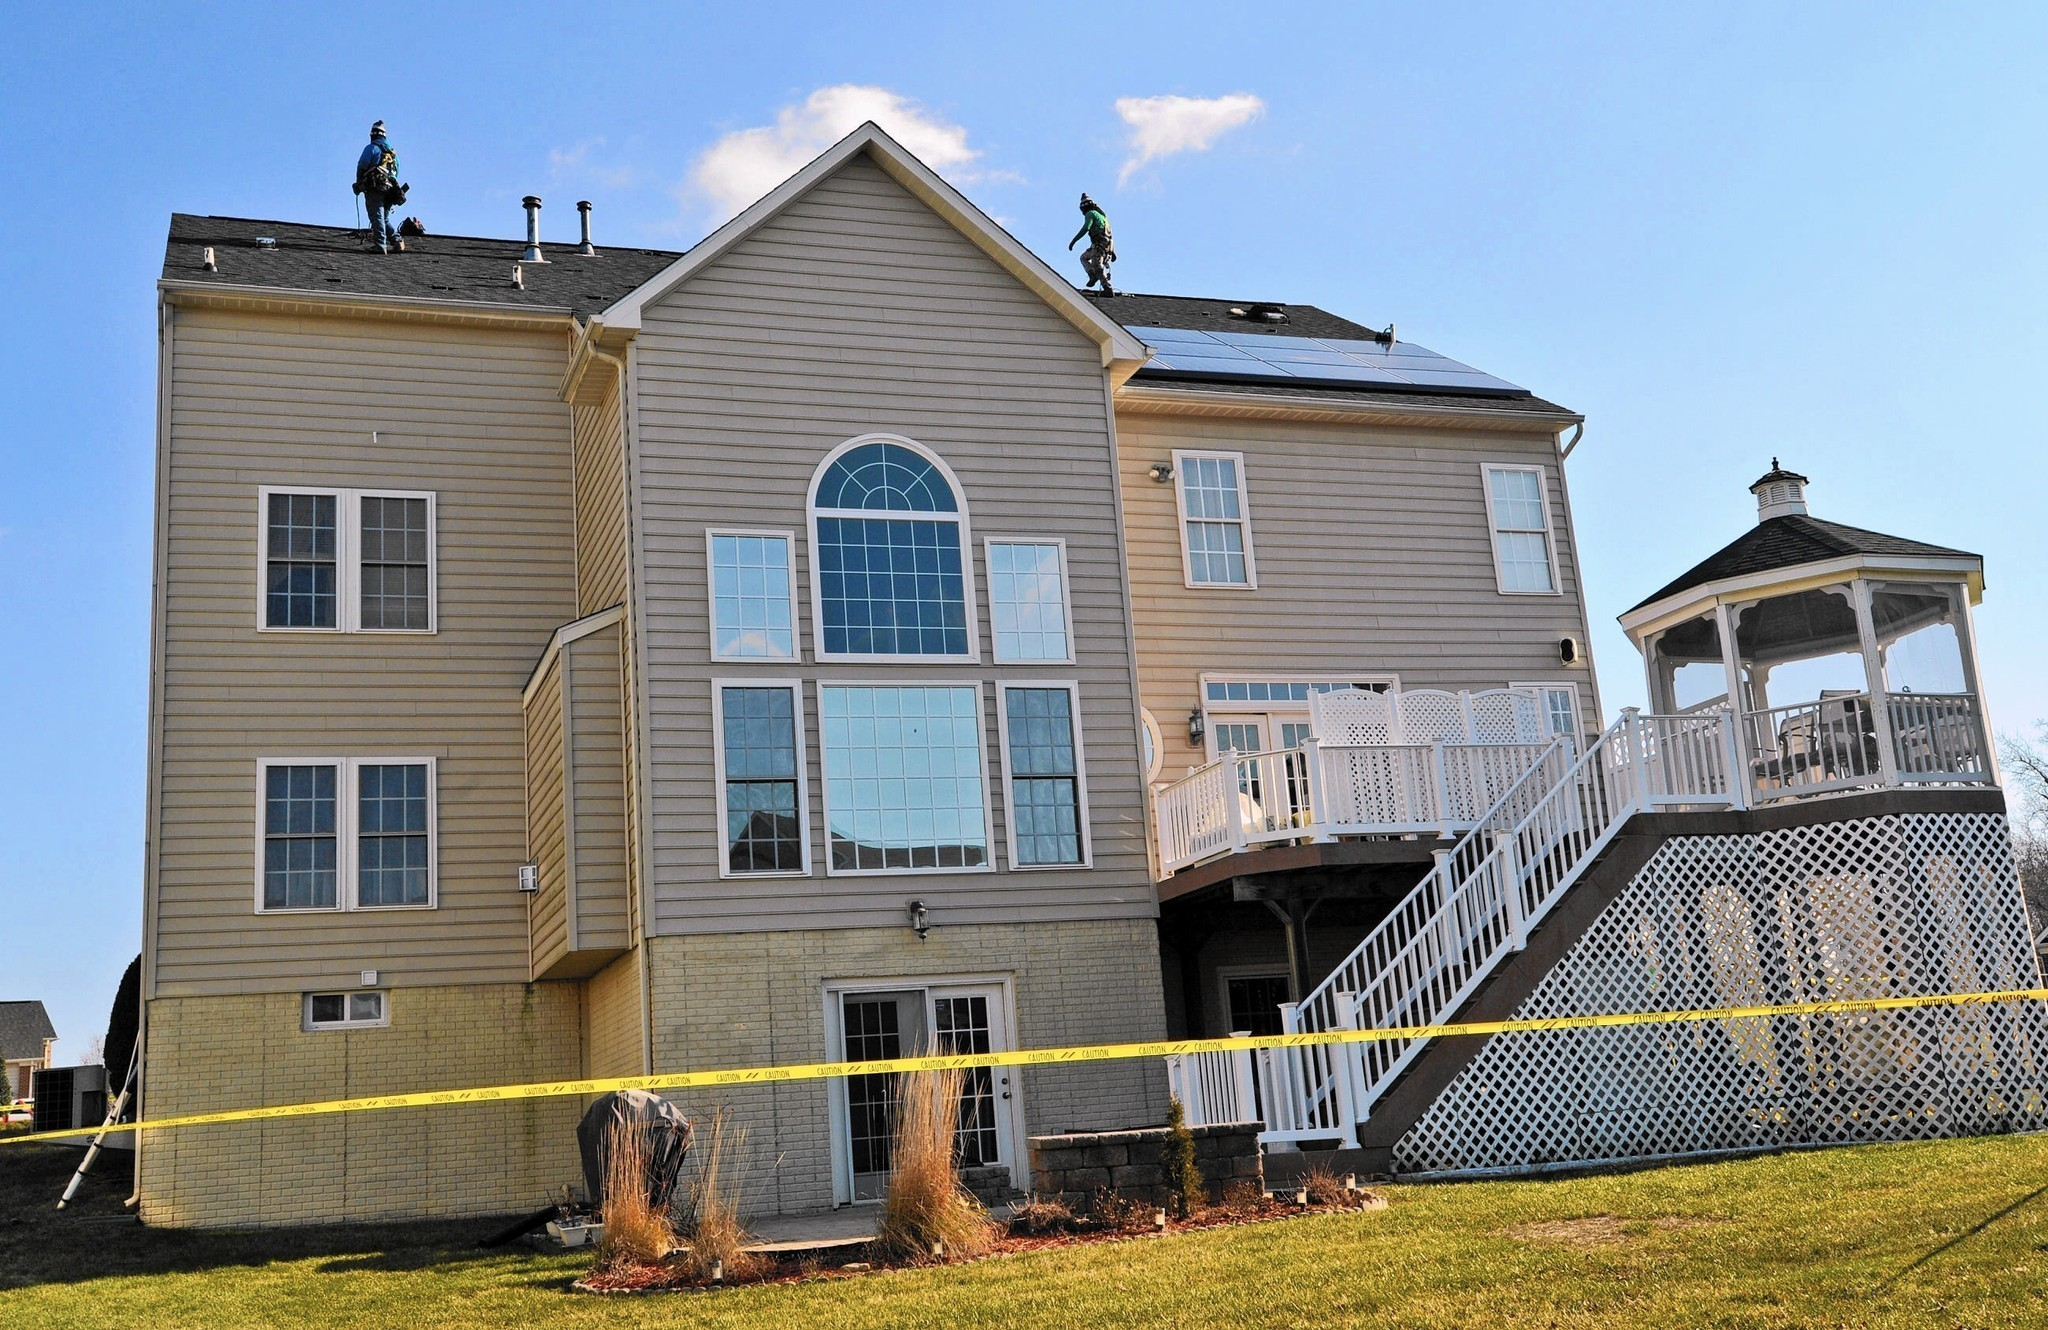 Solar Companies Say They Face Hurdles In Baltimore County